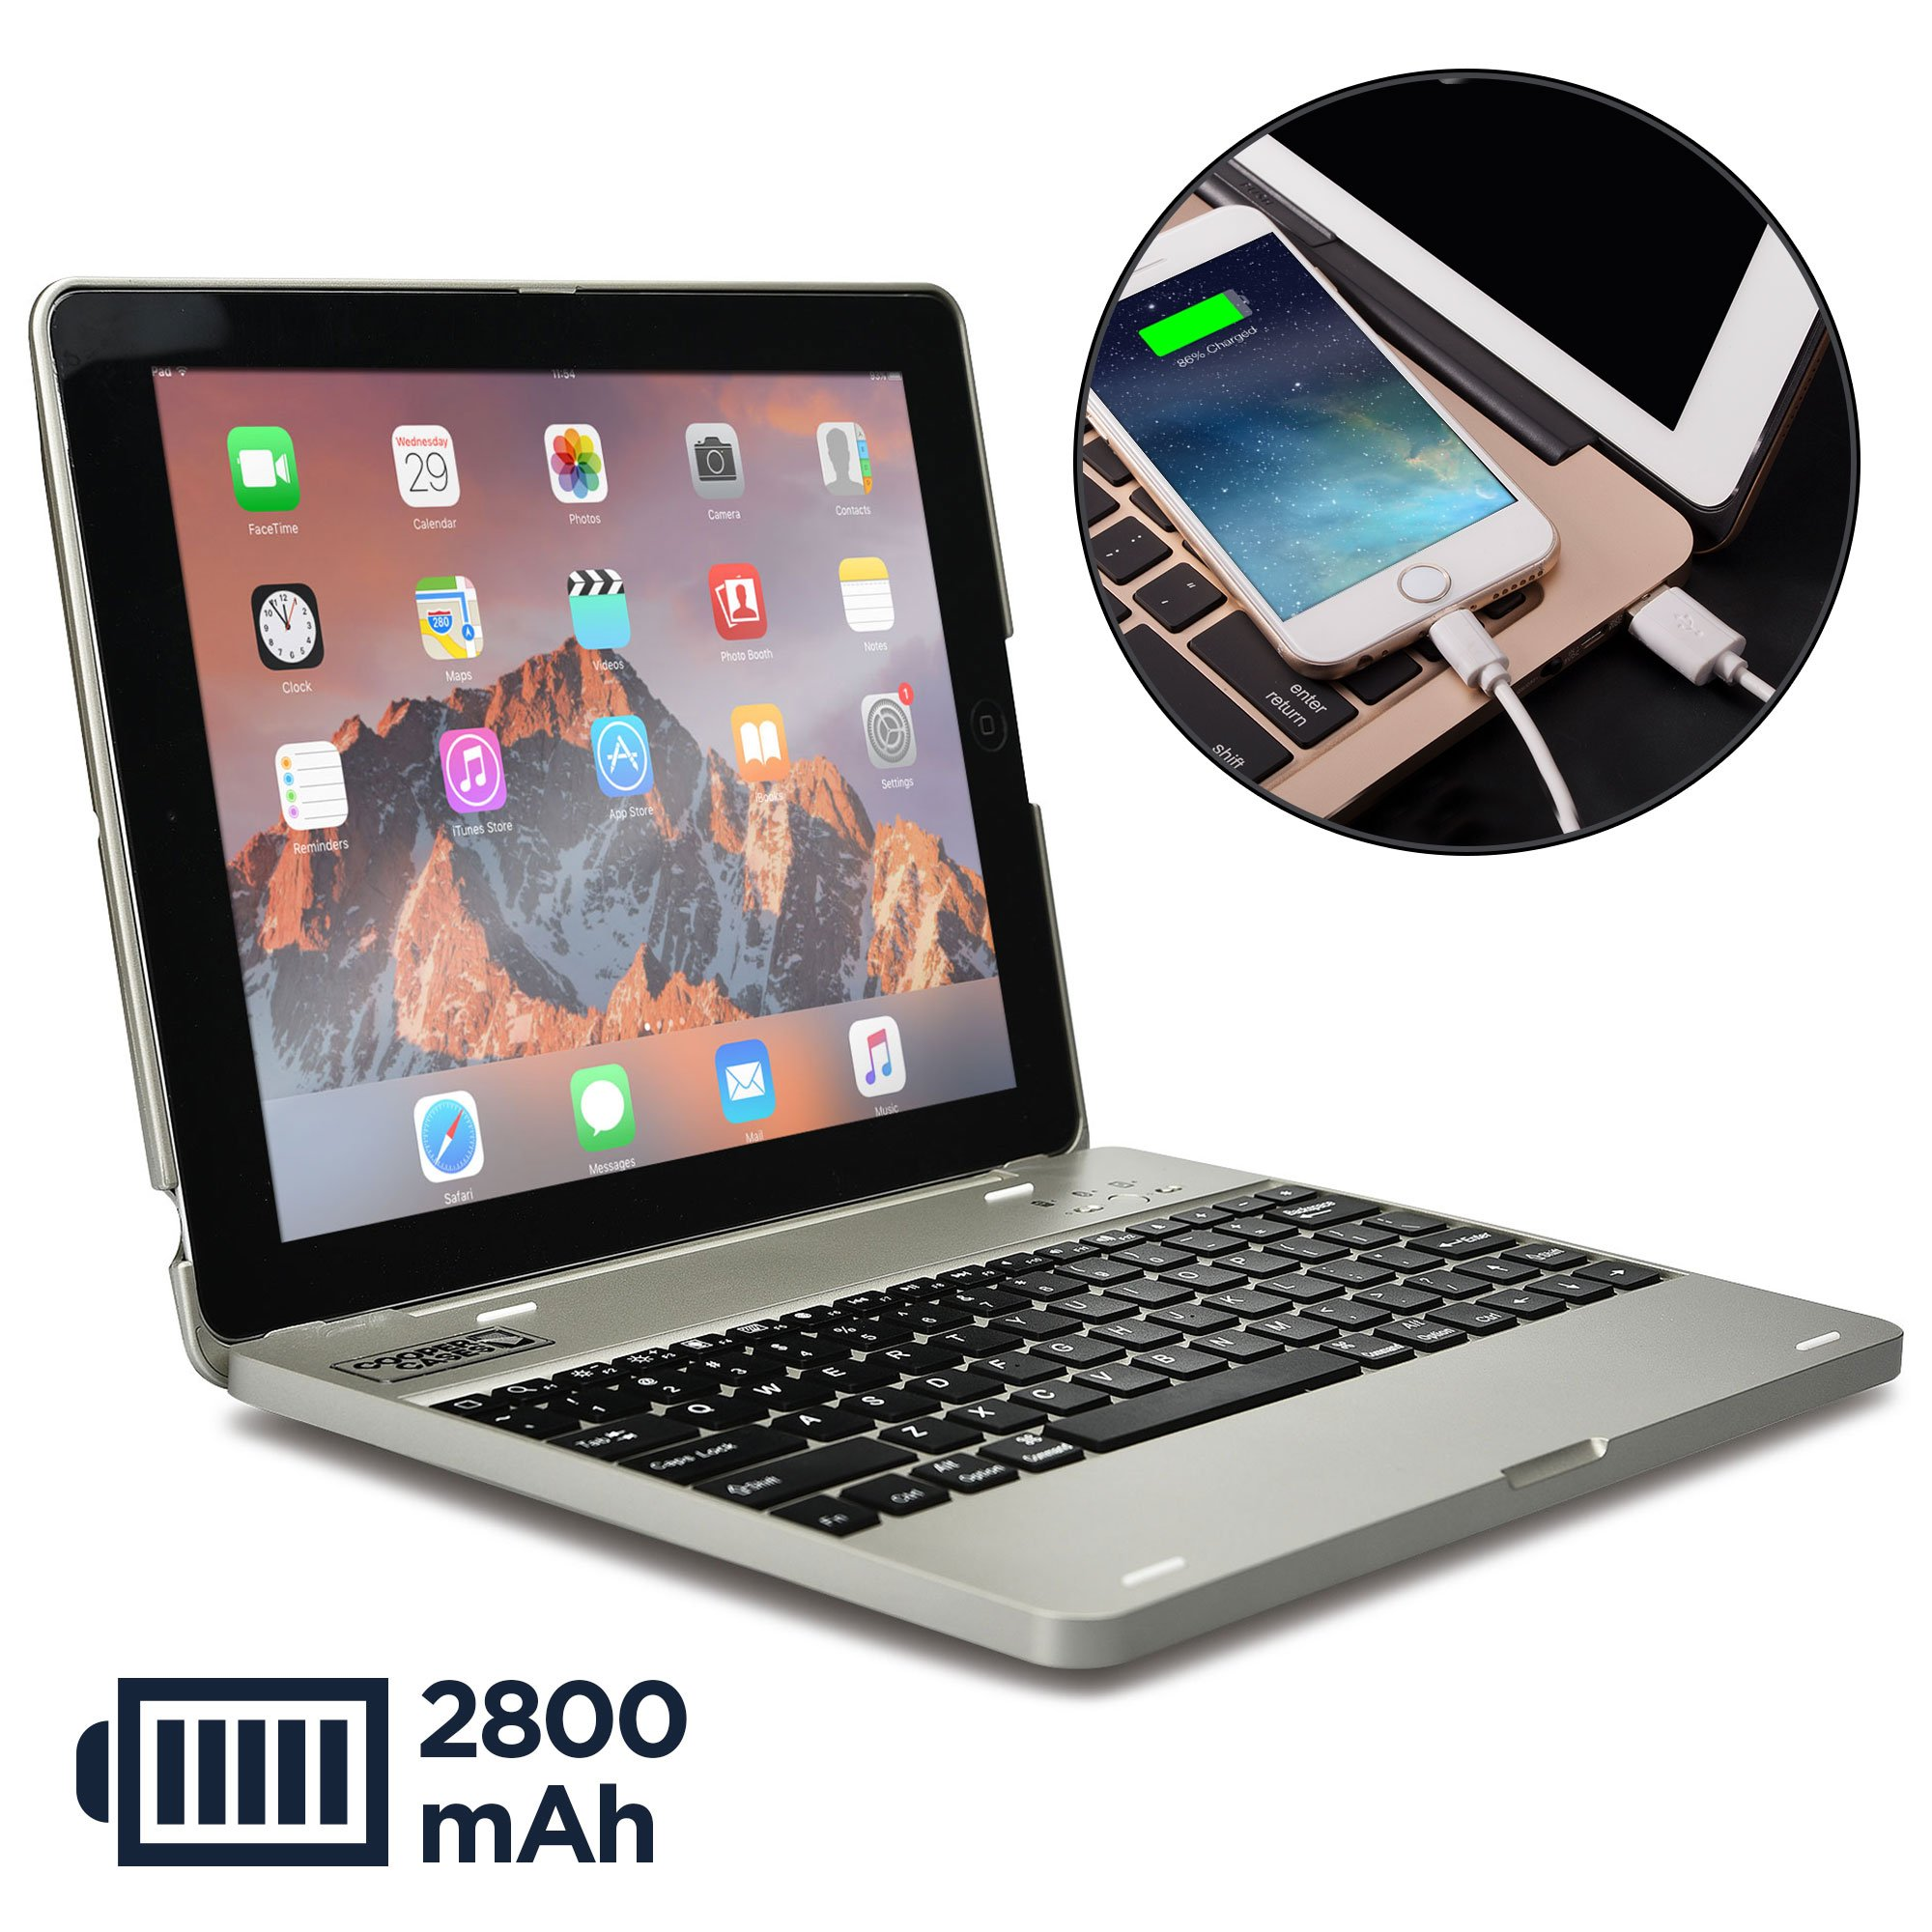 COOPER KAI SKEL P1 Keyboard case compatible with iPad 4, iPad 3, iPad 2   Bluetooth, Wireless Clamshell Cover with Keyboard   Built-in 2800mAh Power Bank to charge iPad, iPhone   60HR Battery (Silver)